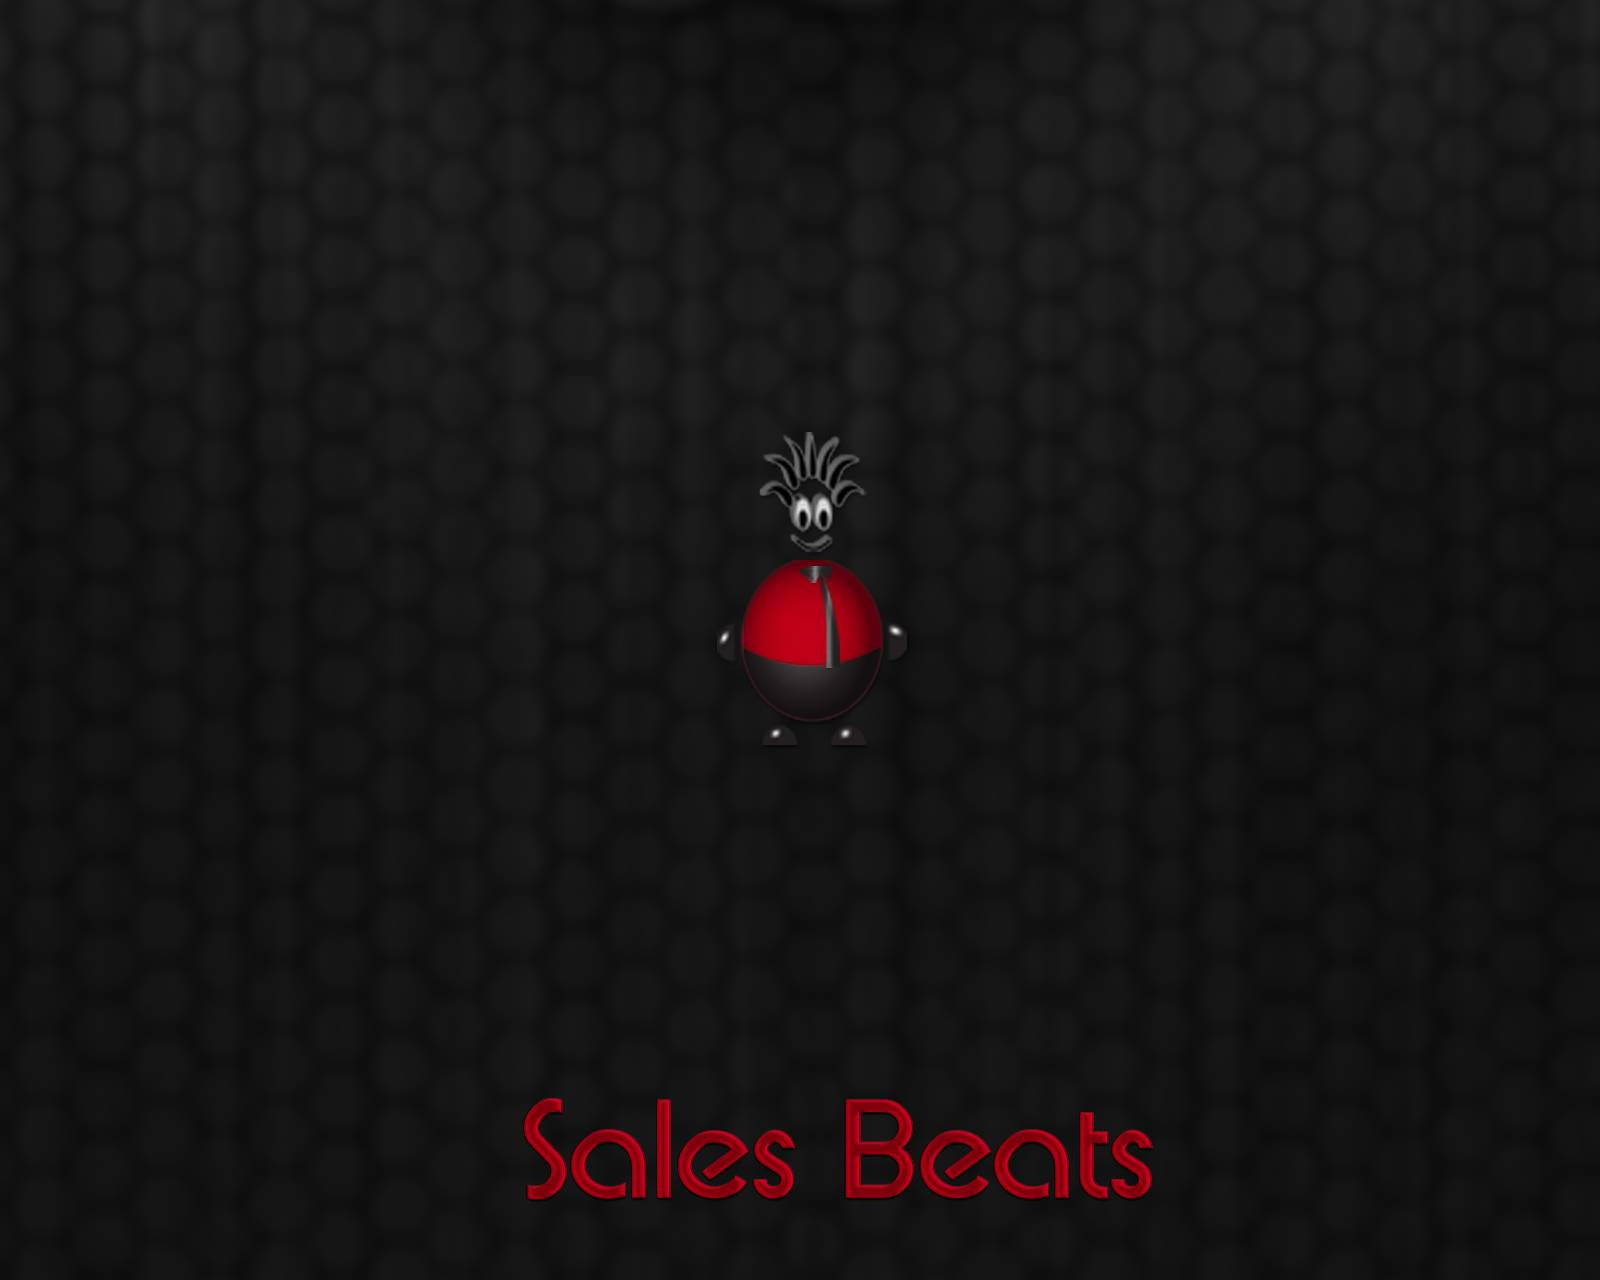 Salesbeats